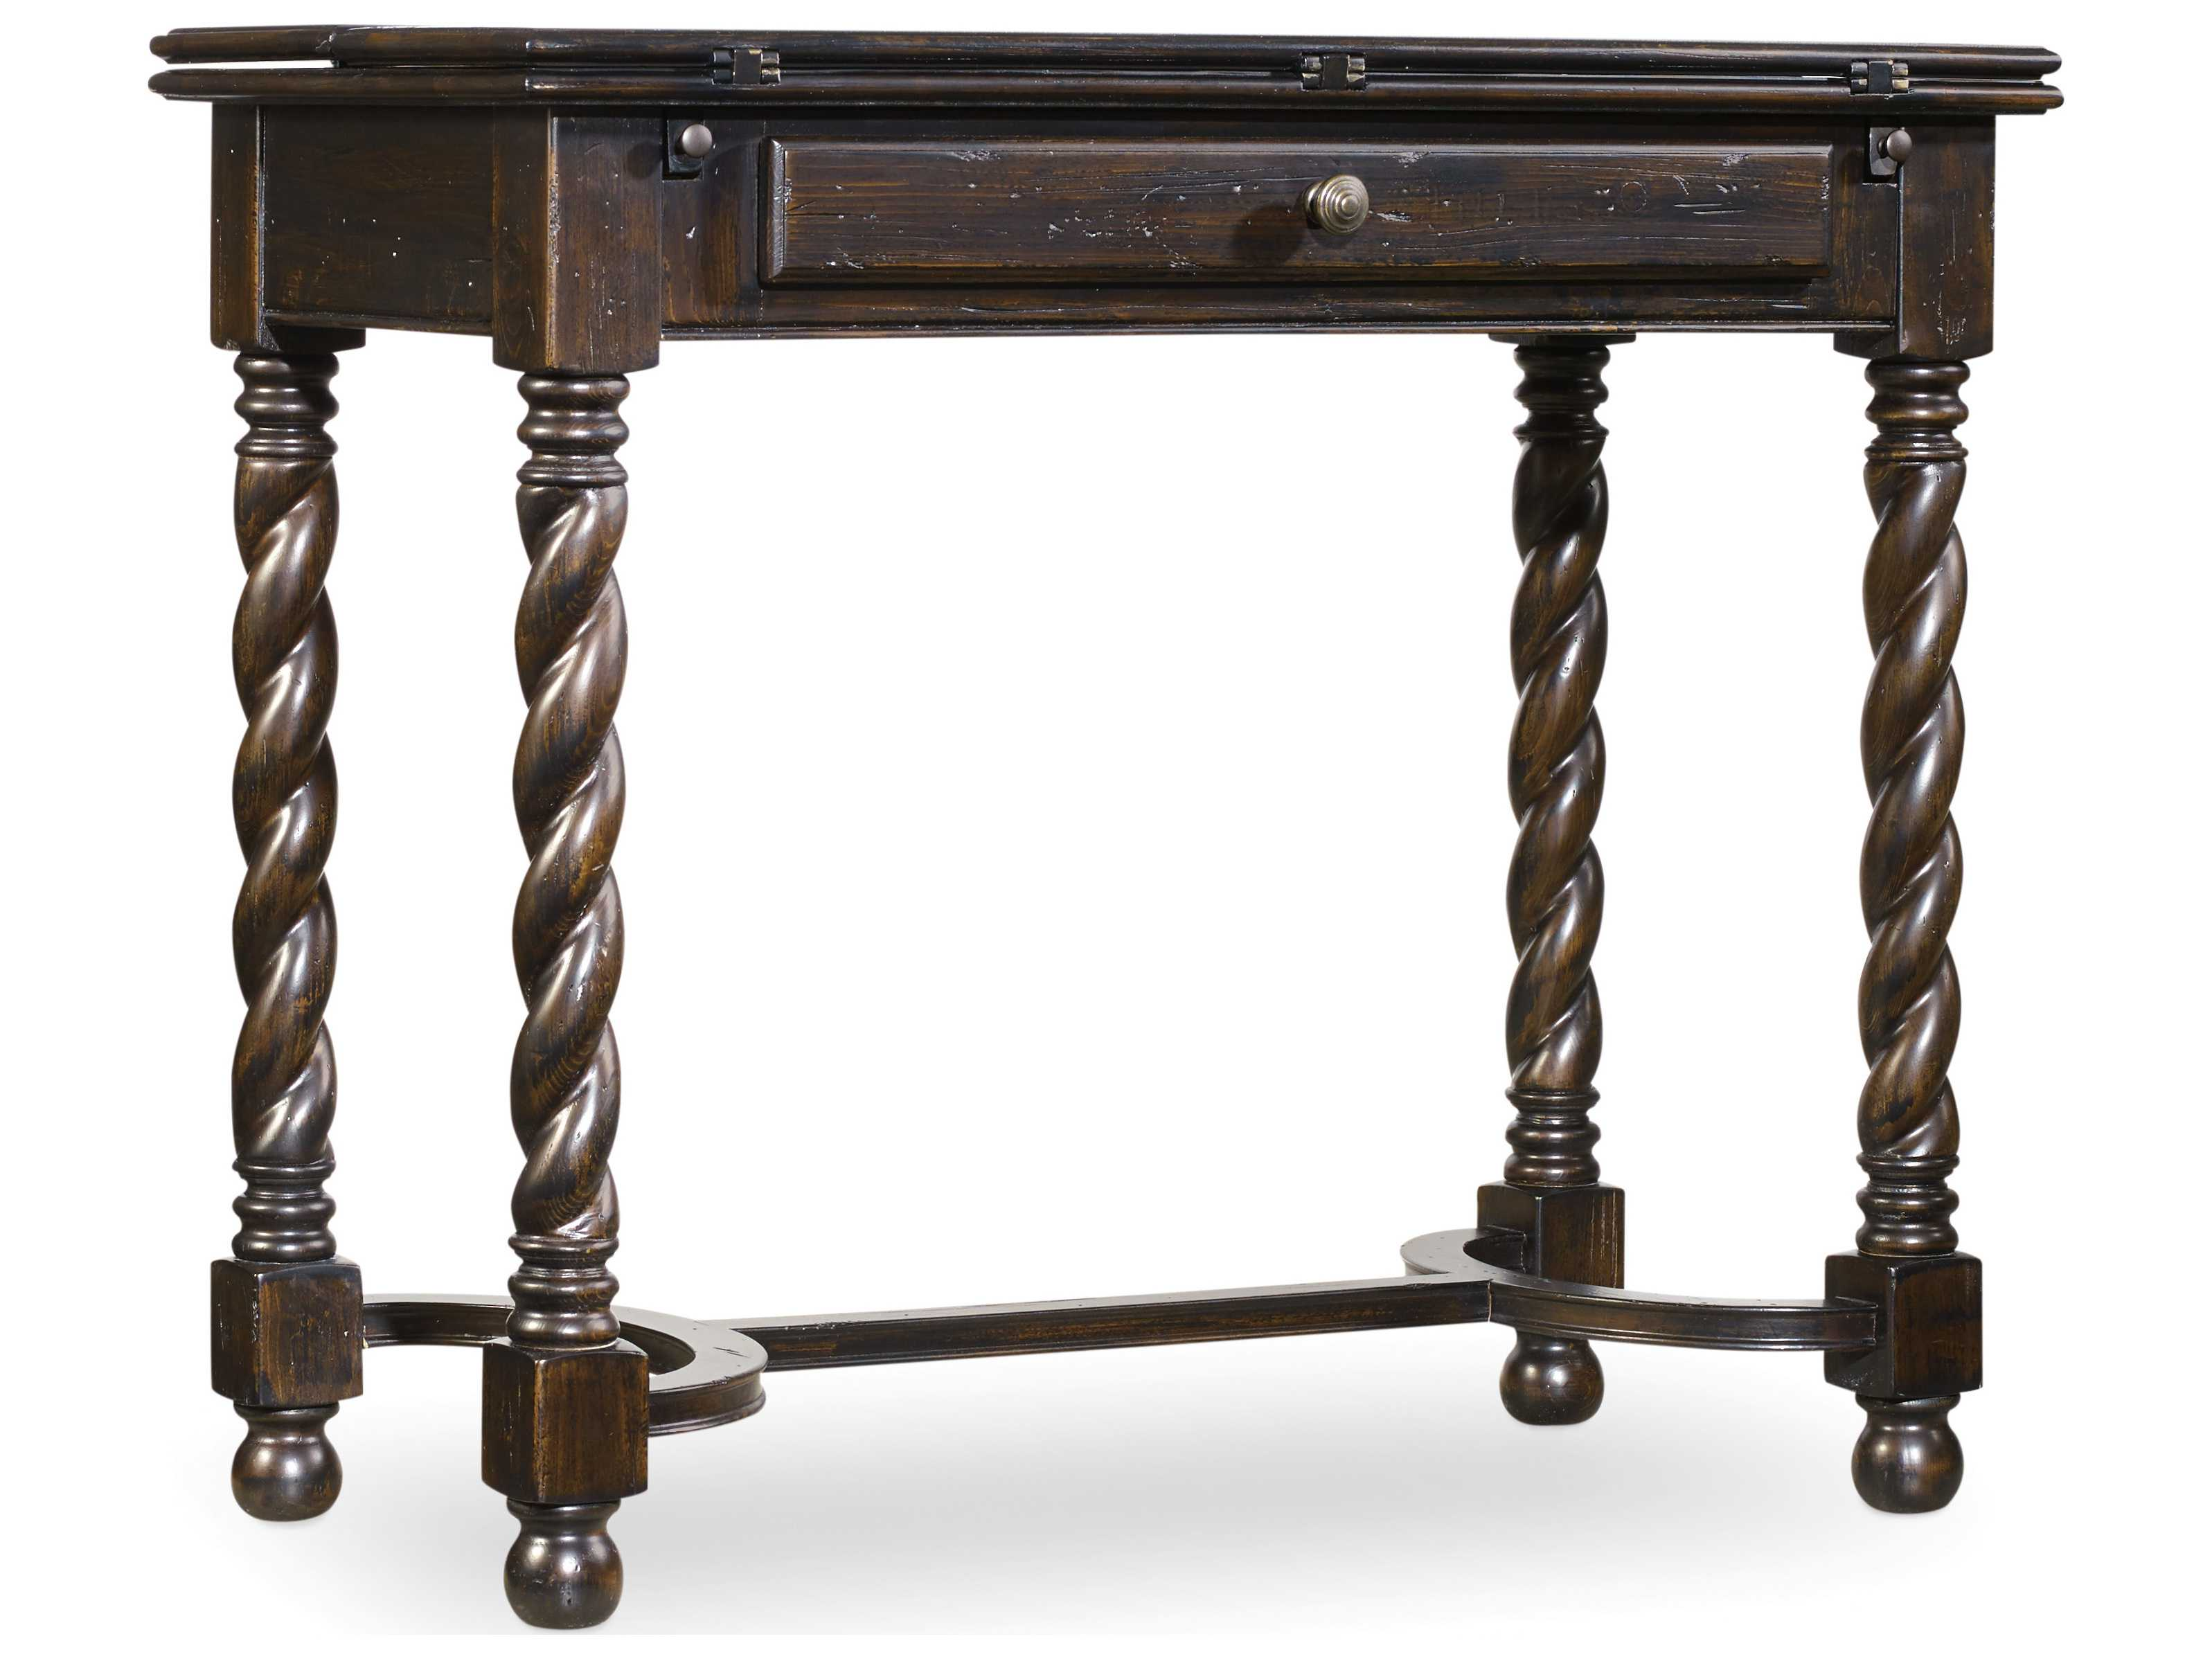 Hooker Furniture Treviso Black 36 39 39 L X 18 39 39 W Rectangular Flip Top Console Table Hoo537450002